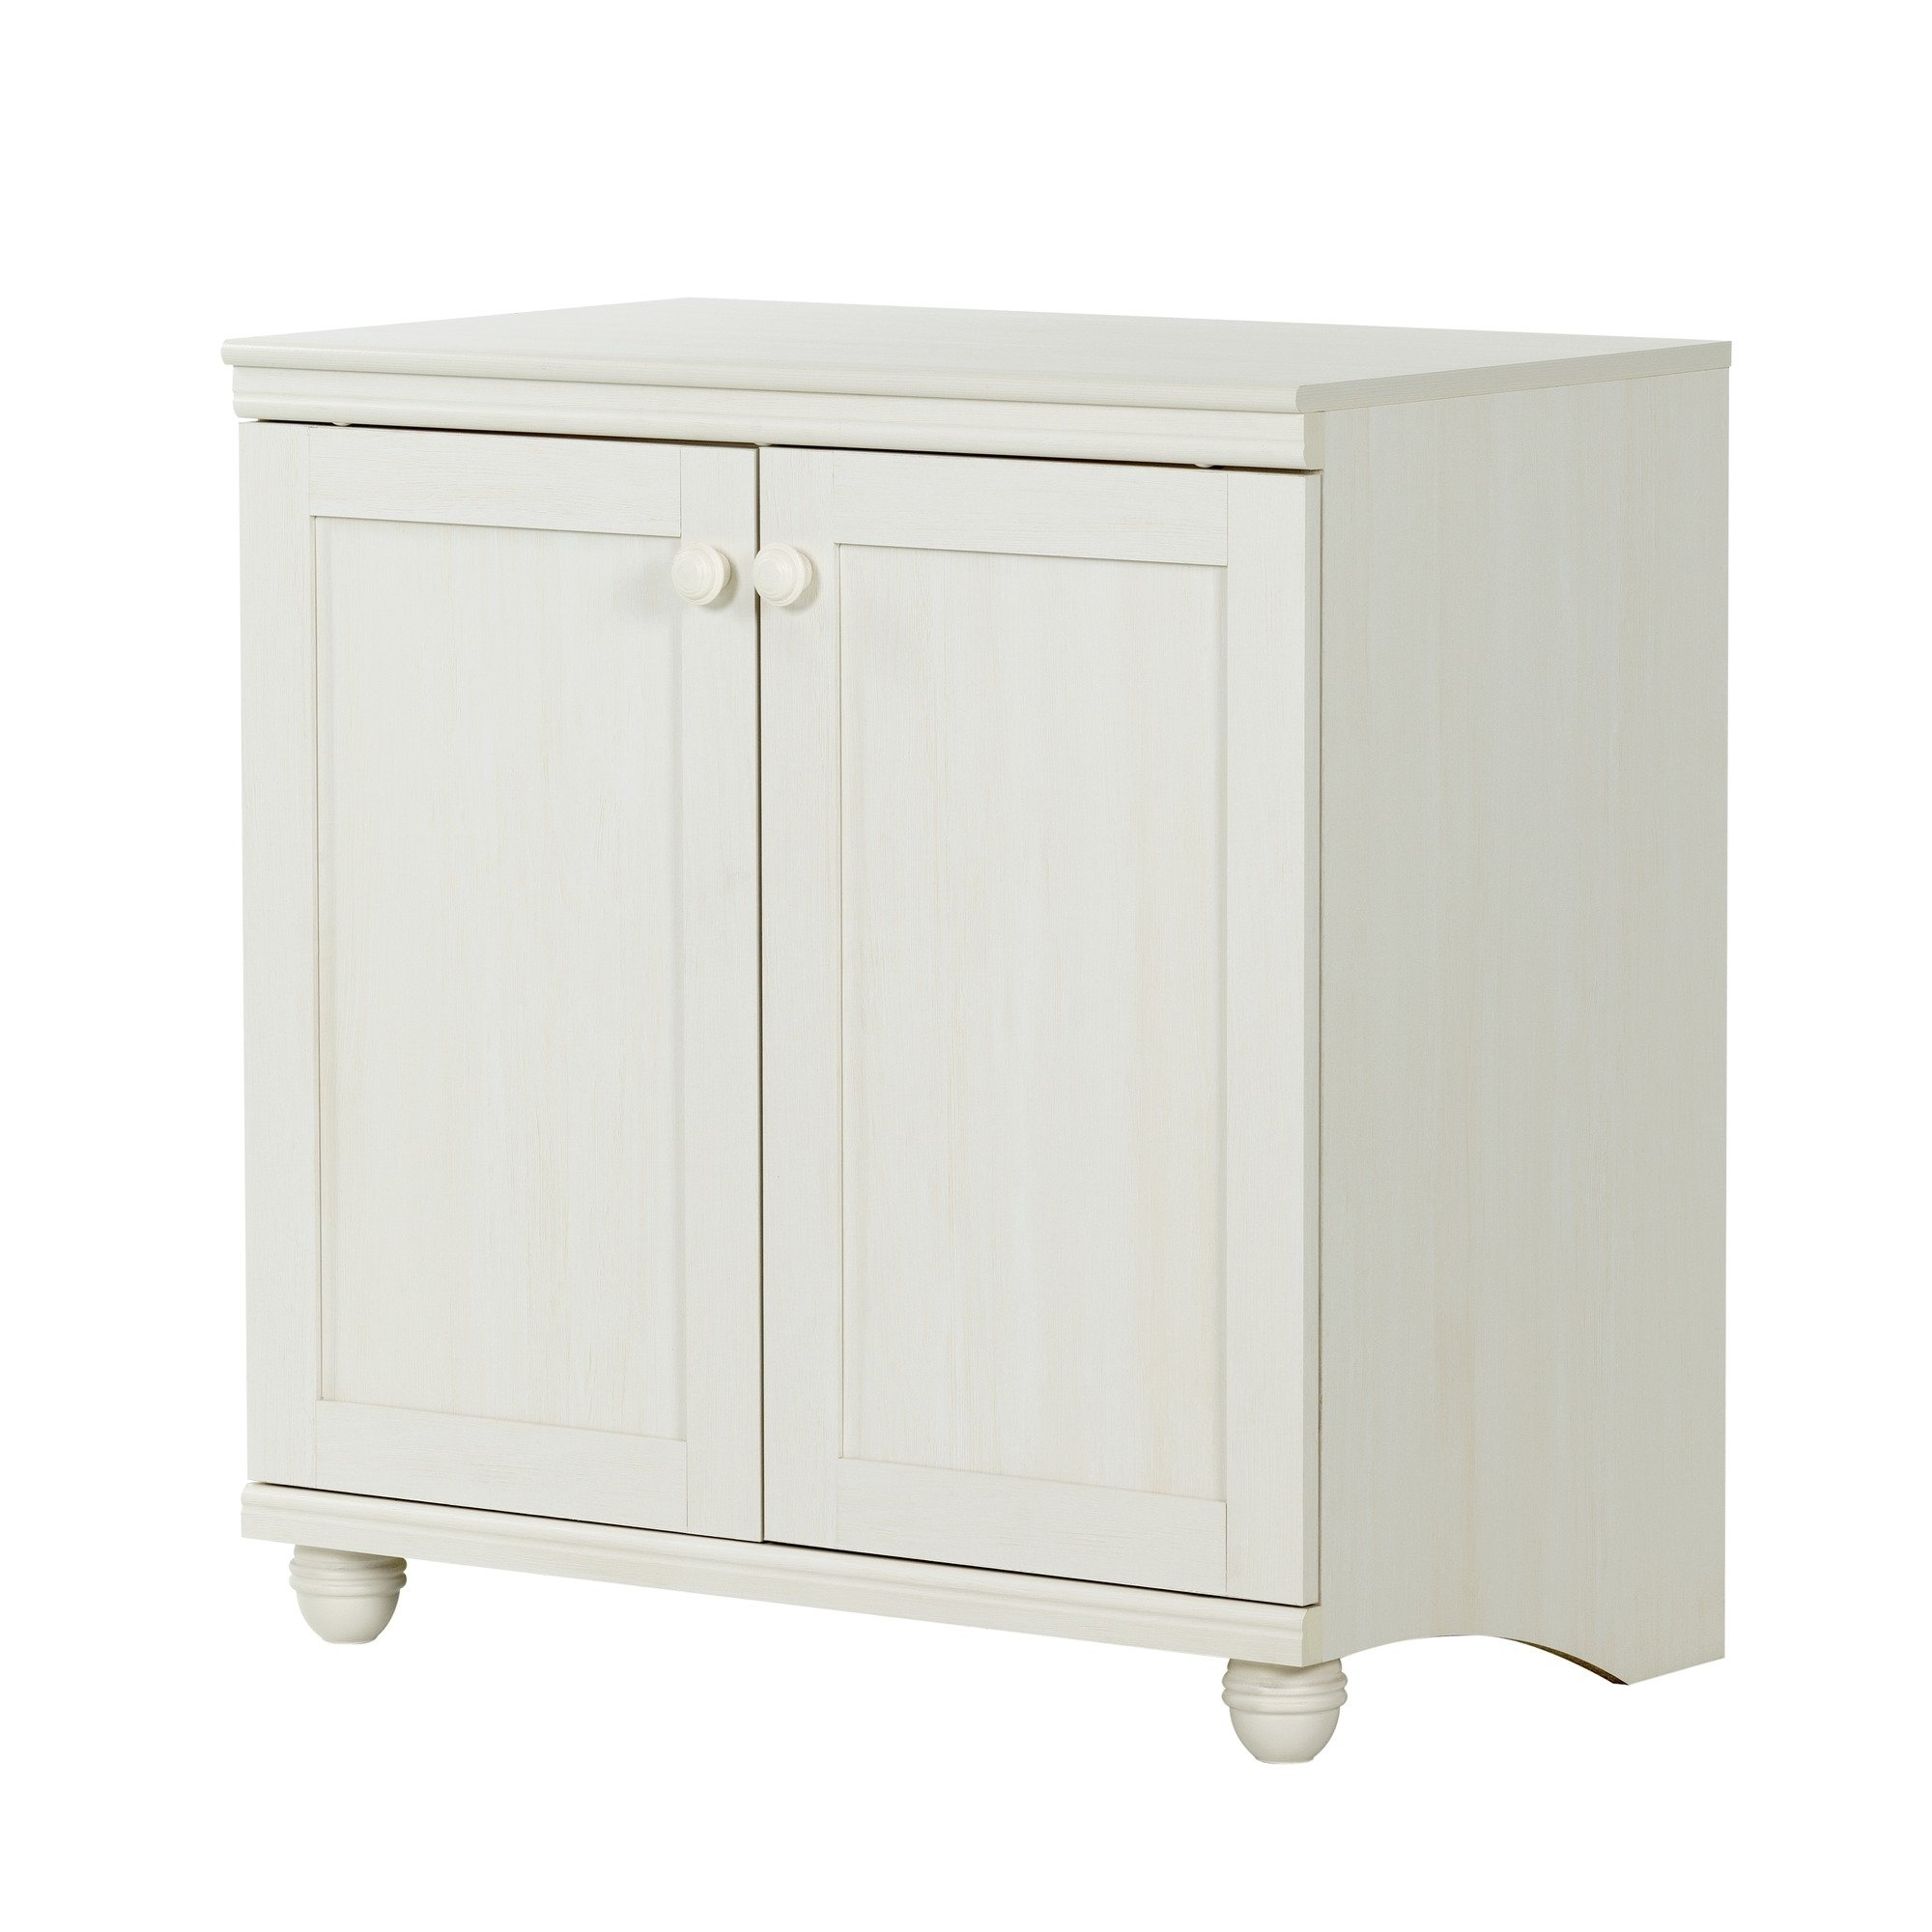 Whitewash Cabinet | Wayfair Within White Wash 4 Door Sideboards (Photo 26 of 30)